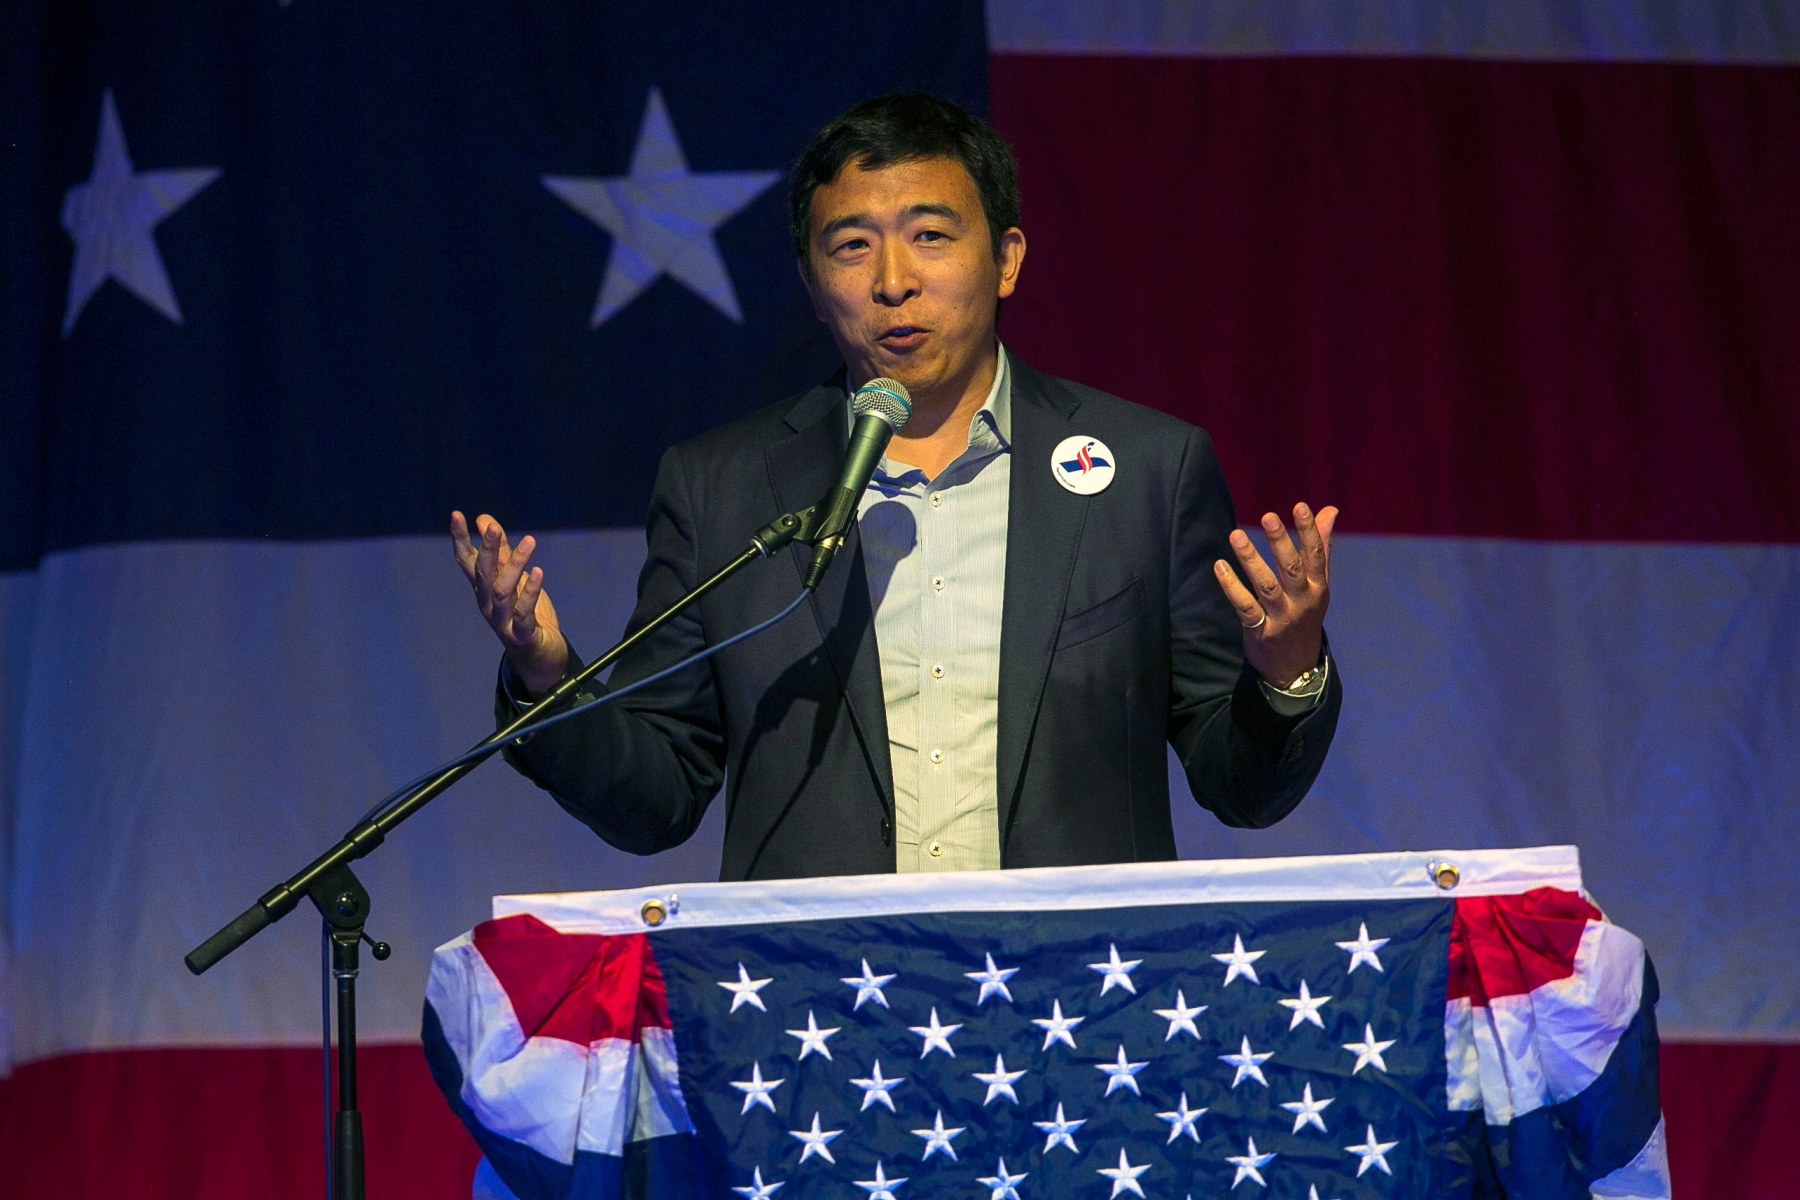 Businessman and Democratic presidential hopeful Andrew Yang speaks at the Iowa Democratic Wing Ding at the Surf Ballroom in Clear Lake, Iowa, Friday, Aug. 10, 2018. (Chris Zoeller/Globe-Gazette via AP)